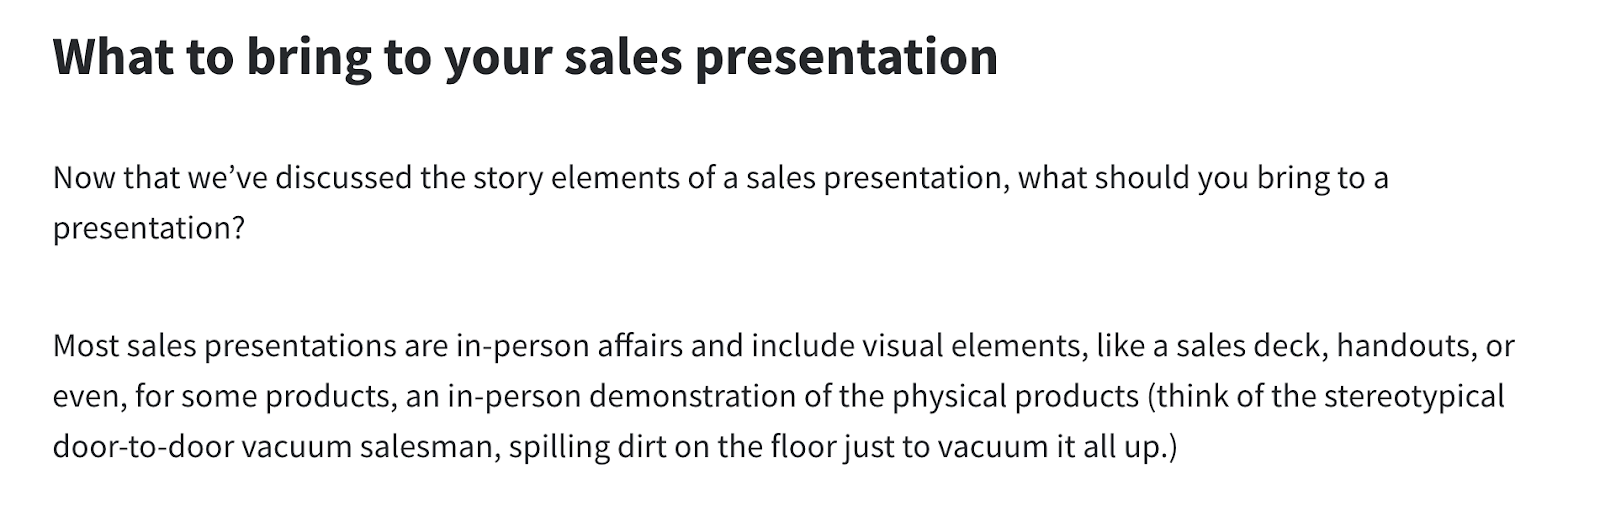 sales presentation blog post